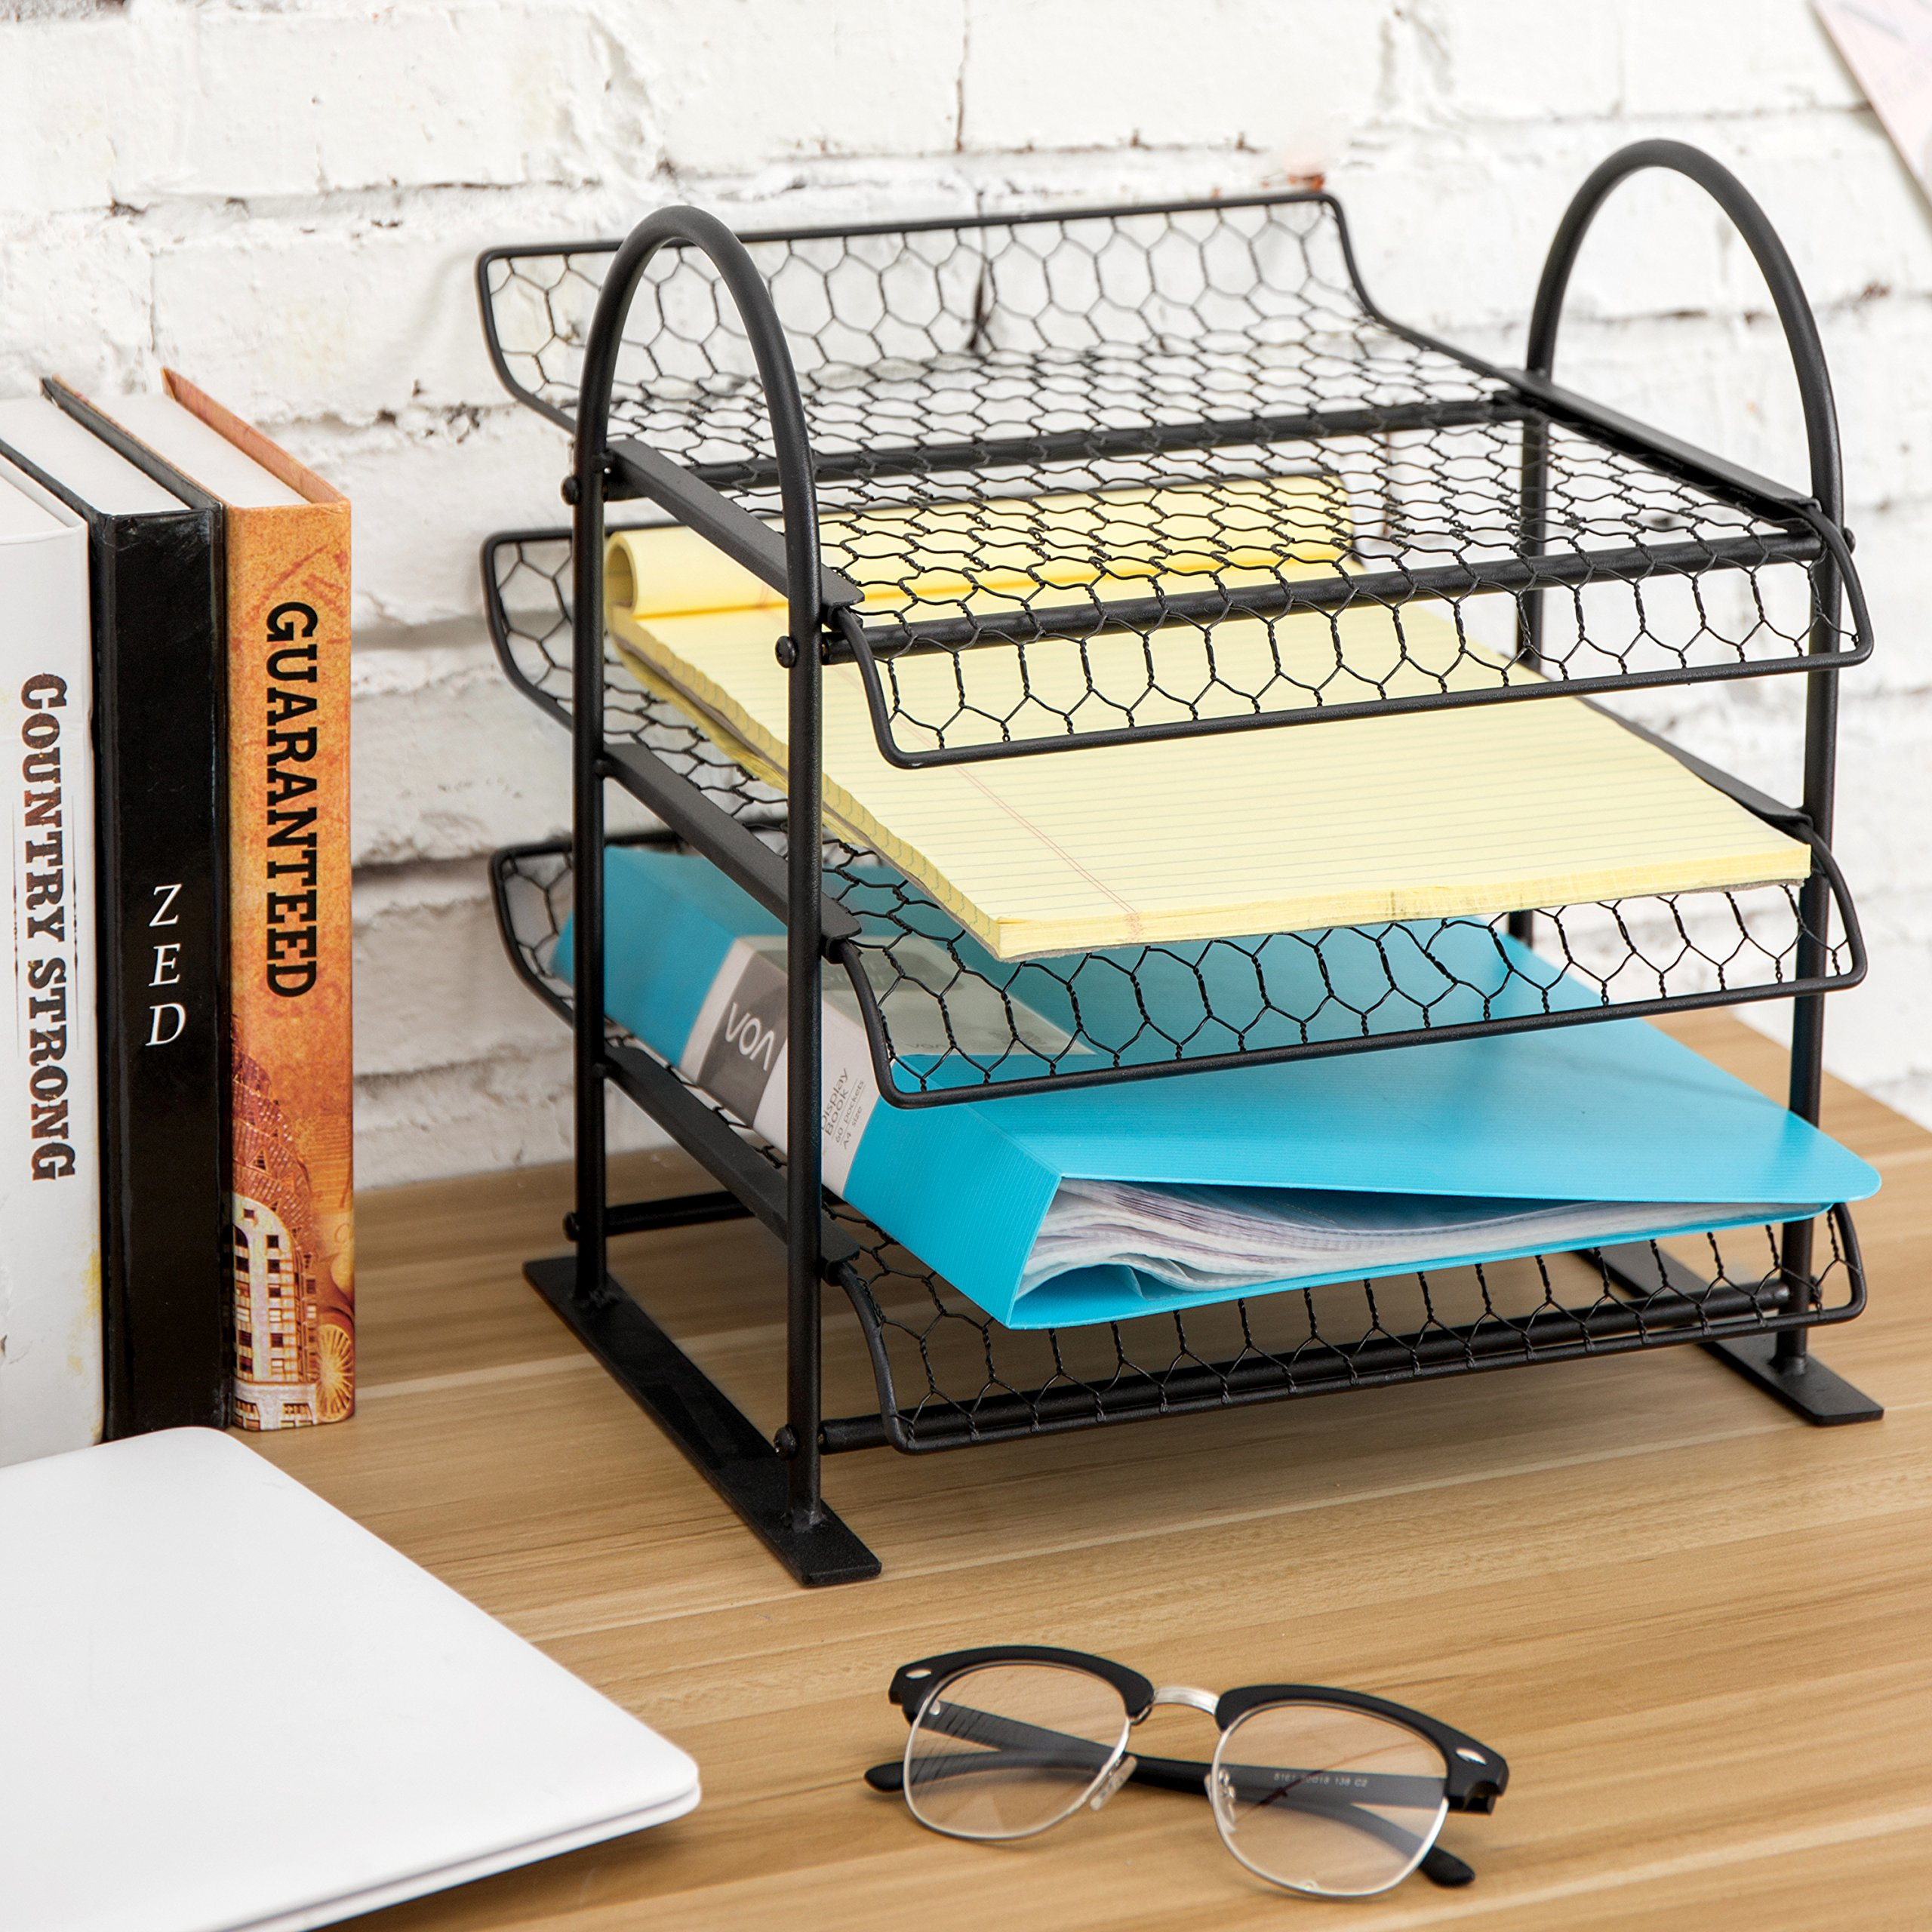 MyGift Metal Chicken Wire Office Document File Organizer with 3-Tier Sliding Trays by MyGift (Image #3)